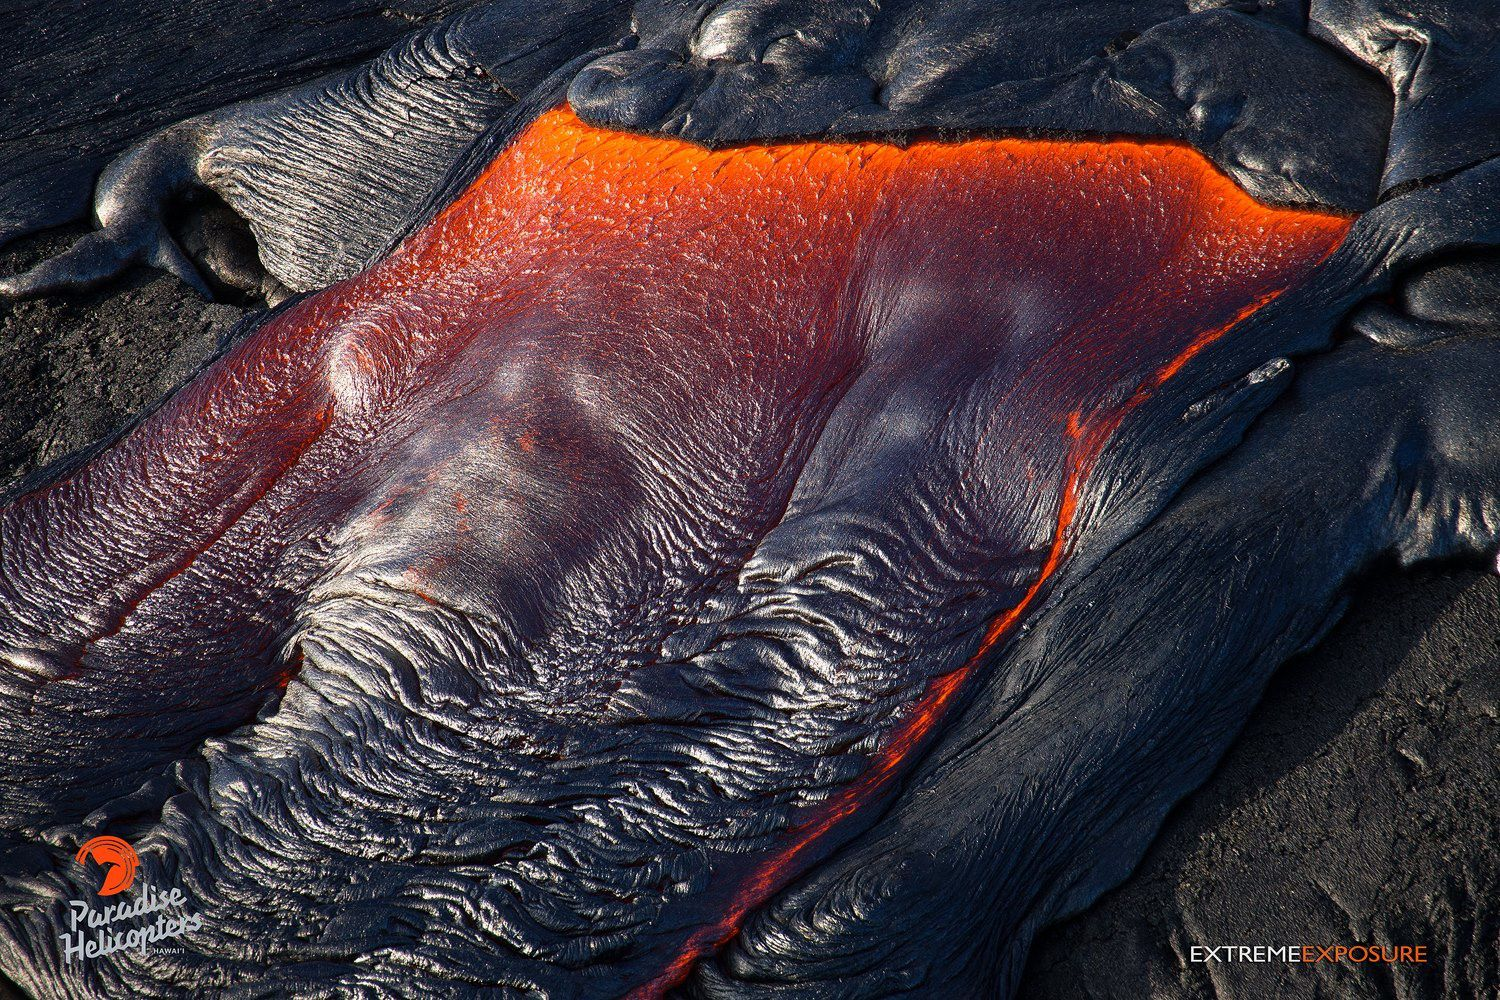 Pu'u O'o - A recent breakout near the distal tip of the casting lets out lava that covers an old cast - photo Bruce Omori / Paradise Helicopters